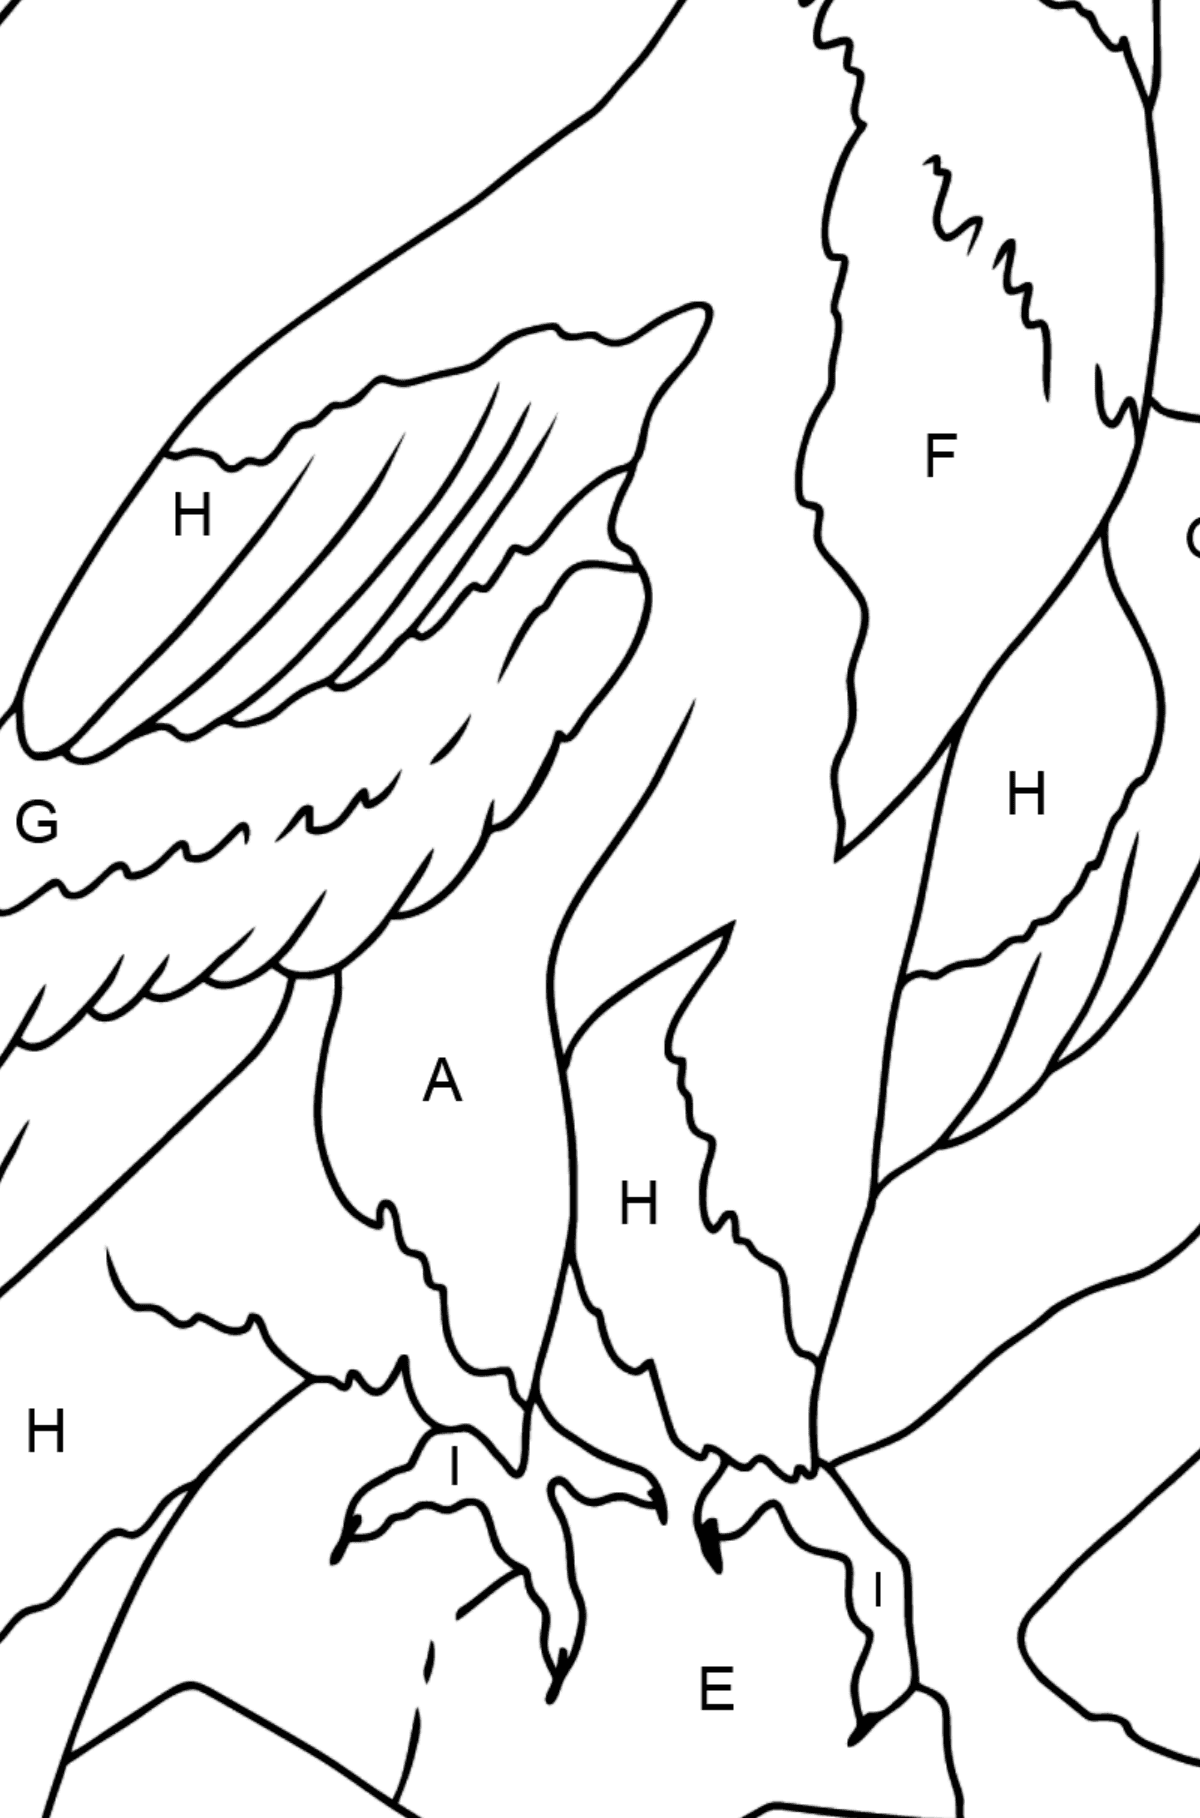 Coloring Page - An Alpine Eagle - Coloring by Letters for Kids